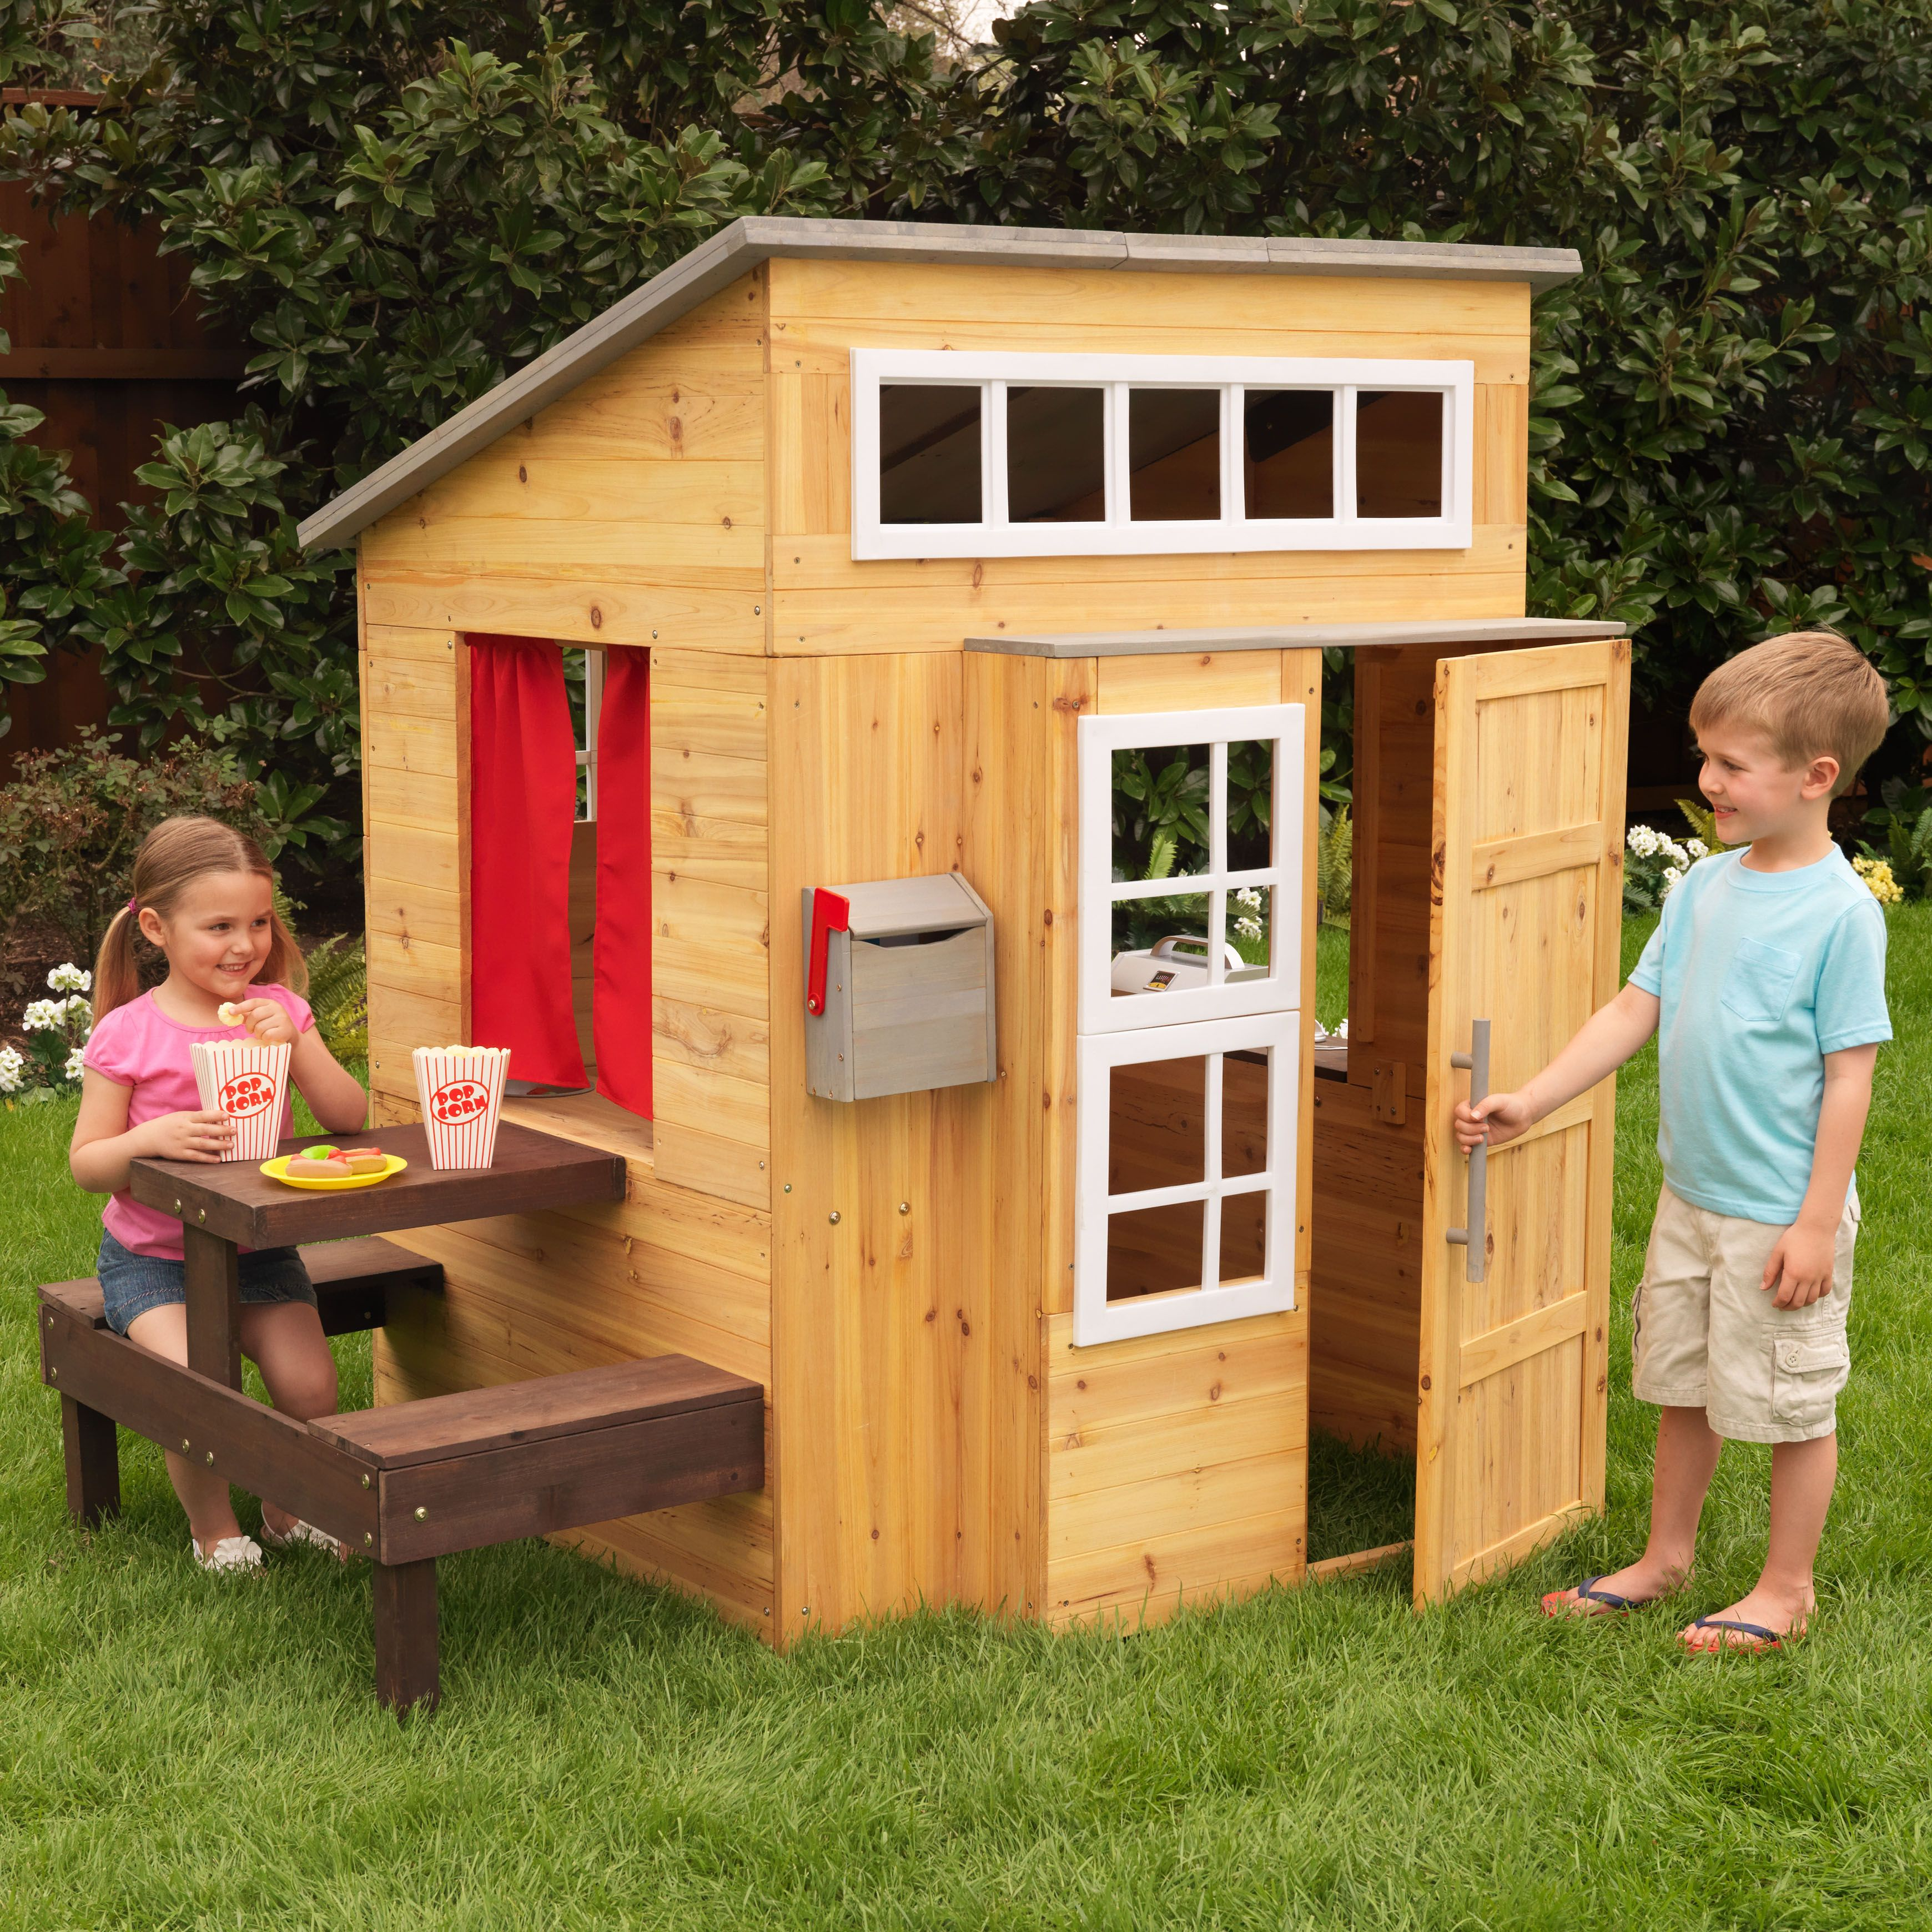 Awesome outdoor playhouse.